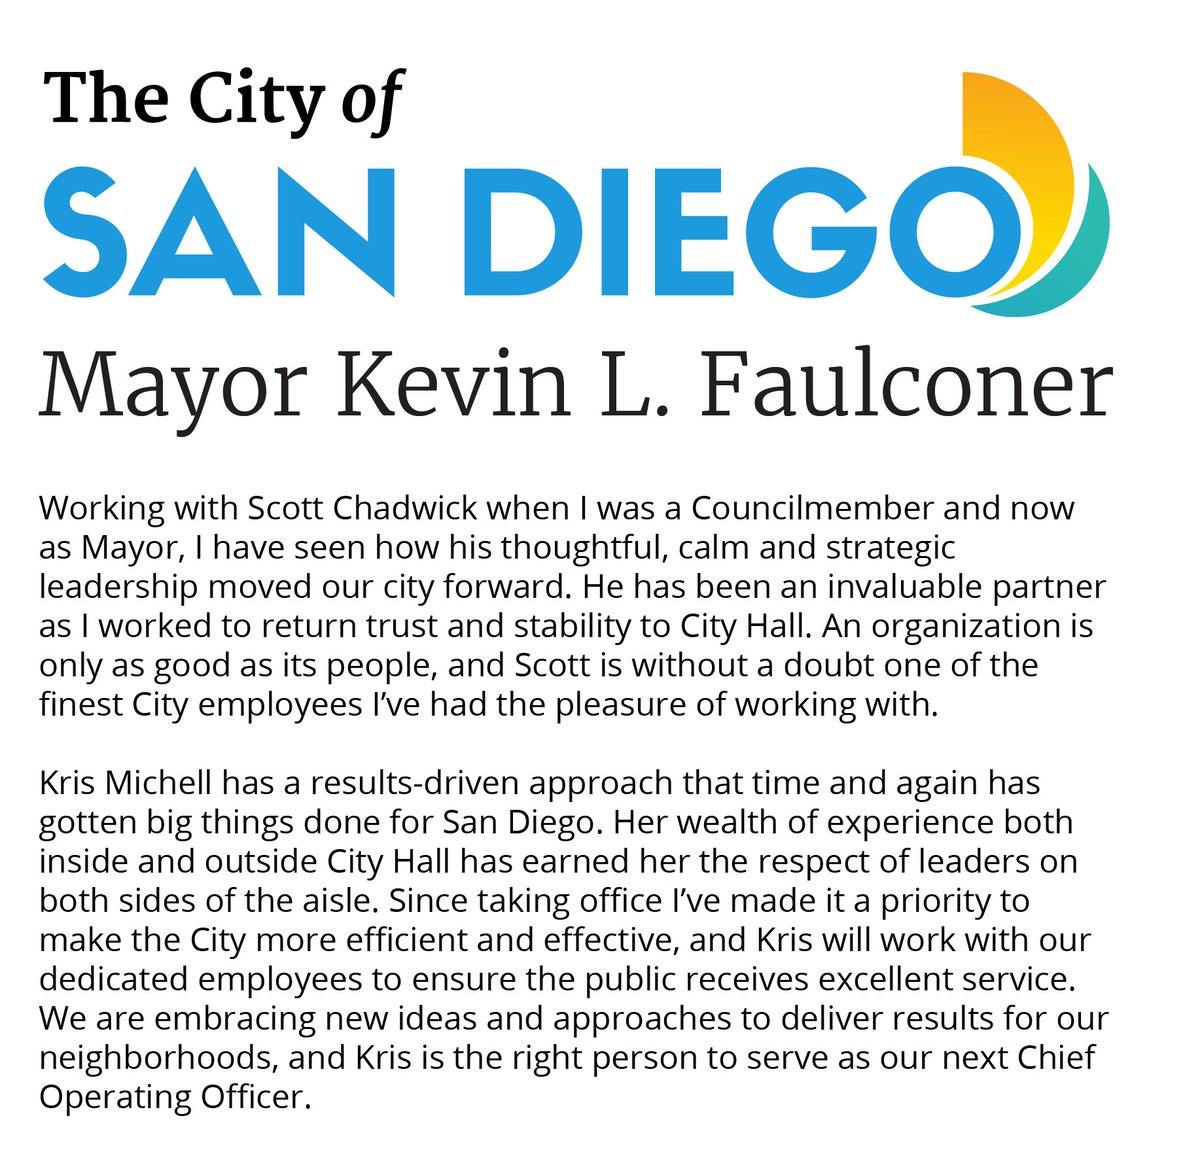 I am pleased to announce the appointment of Kris Michell as Chief Operating Officer. Kris will succeed Scott Chadwick, who has faithfully served the City of San Diego for more than a decade. http://bit.ly/release12218